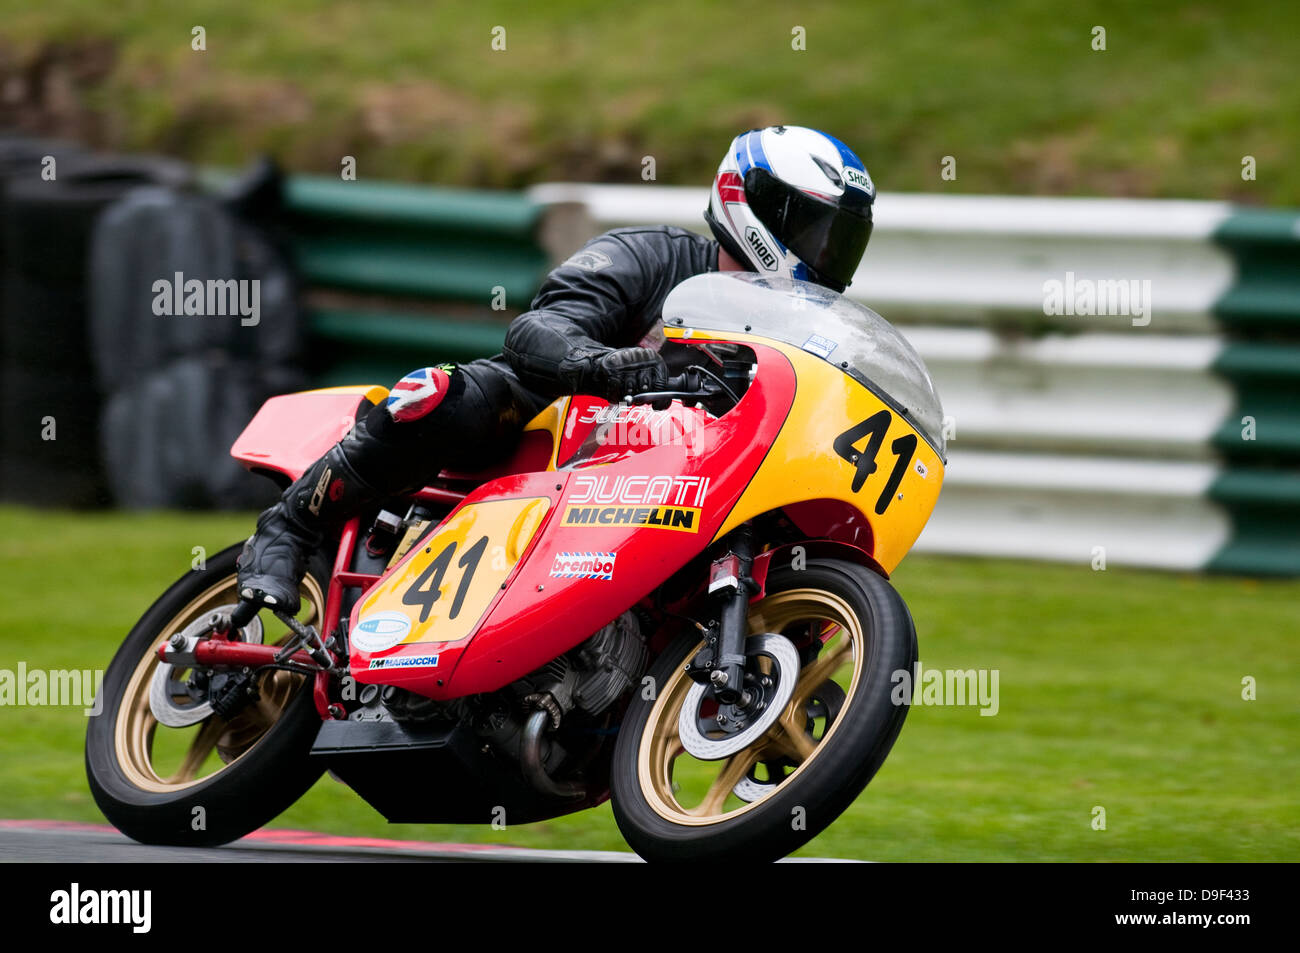 Classic Ducati Motorcycle High Resolution Stock Photography And Images Alamy